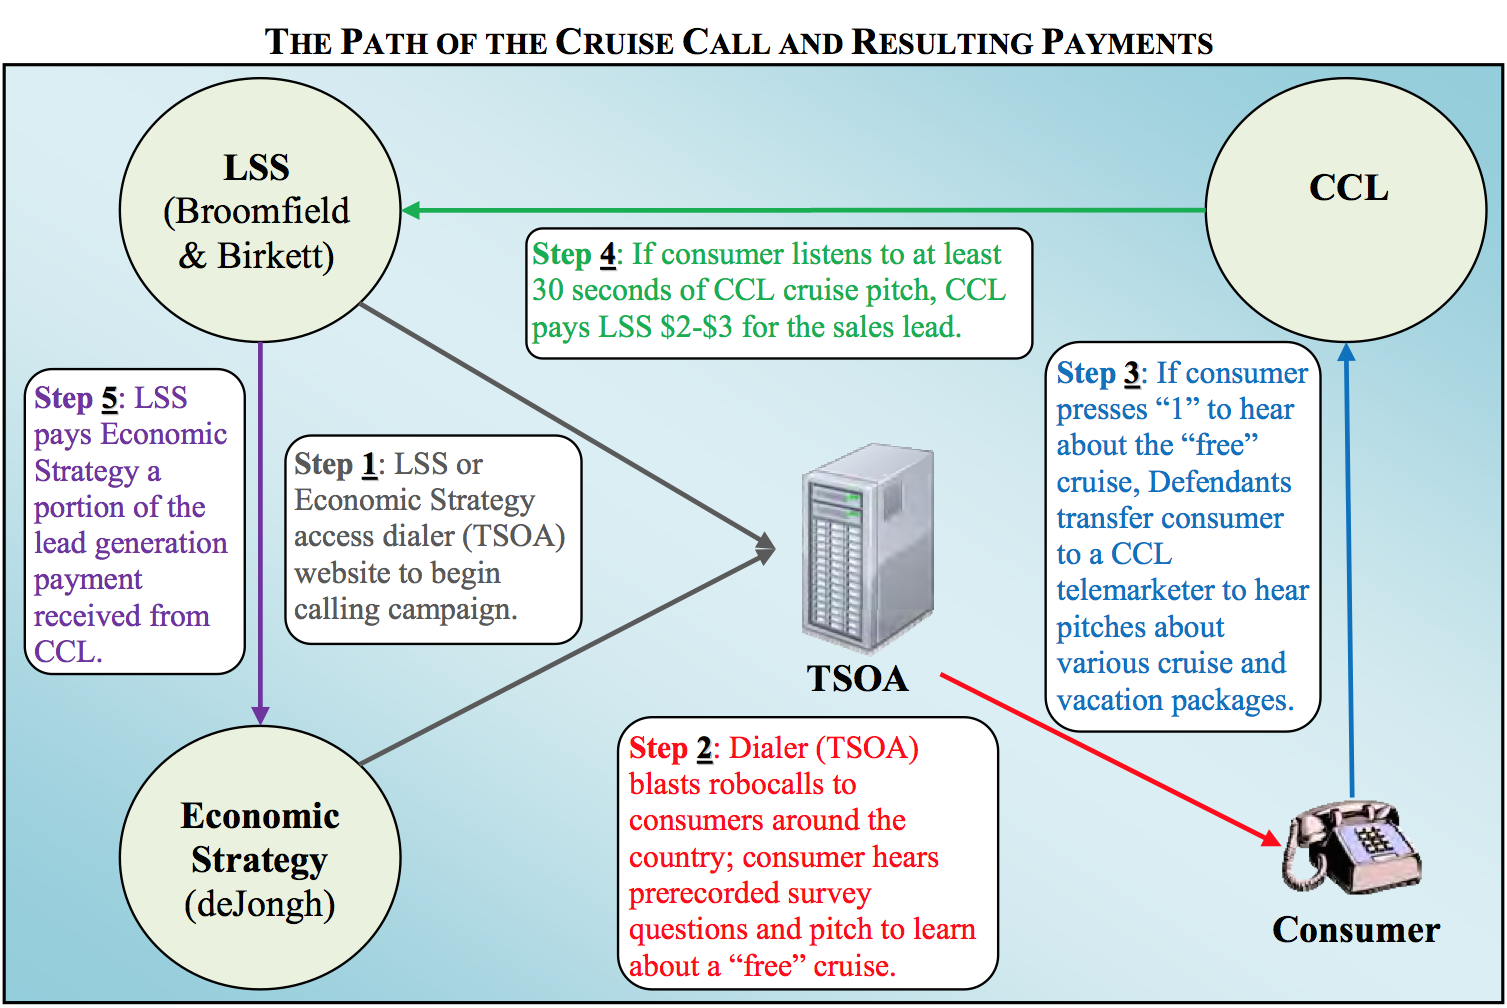 A diagram from the FTC complaint showing how millions of automated marketing robocalls were made each day under the guise of a political survey.